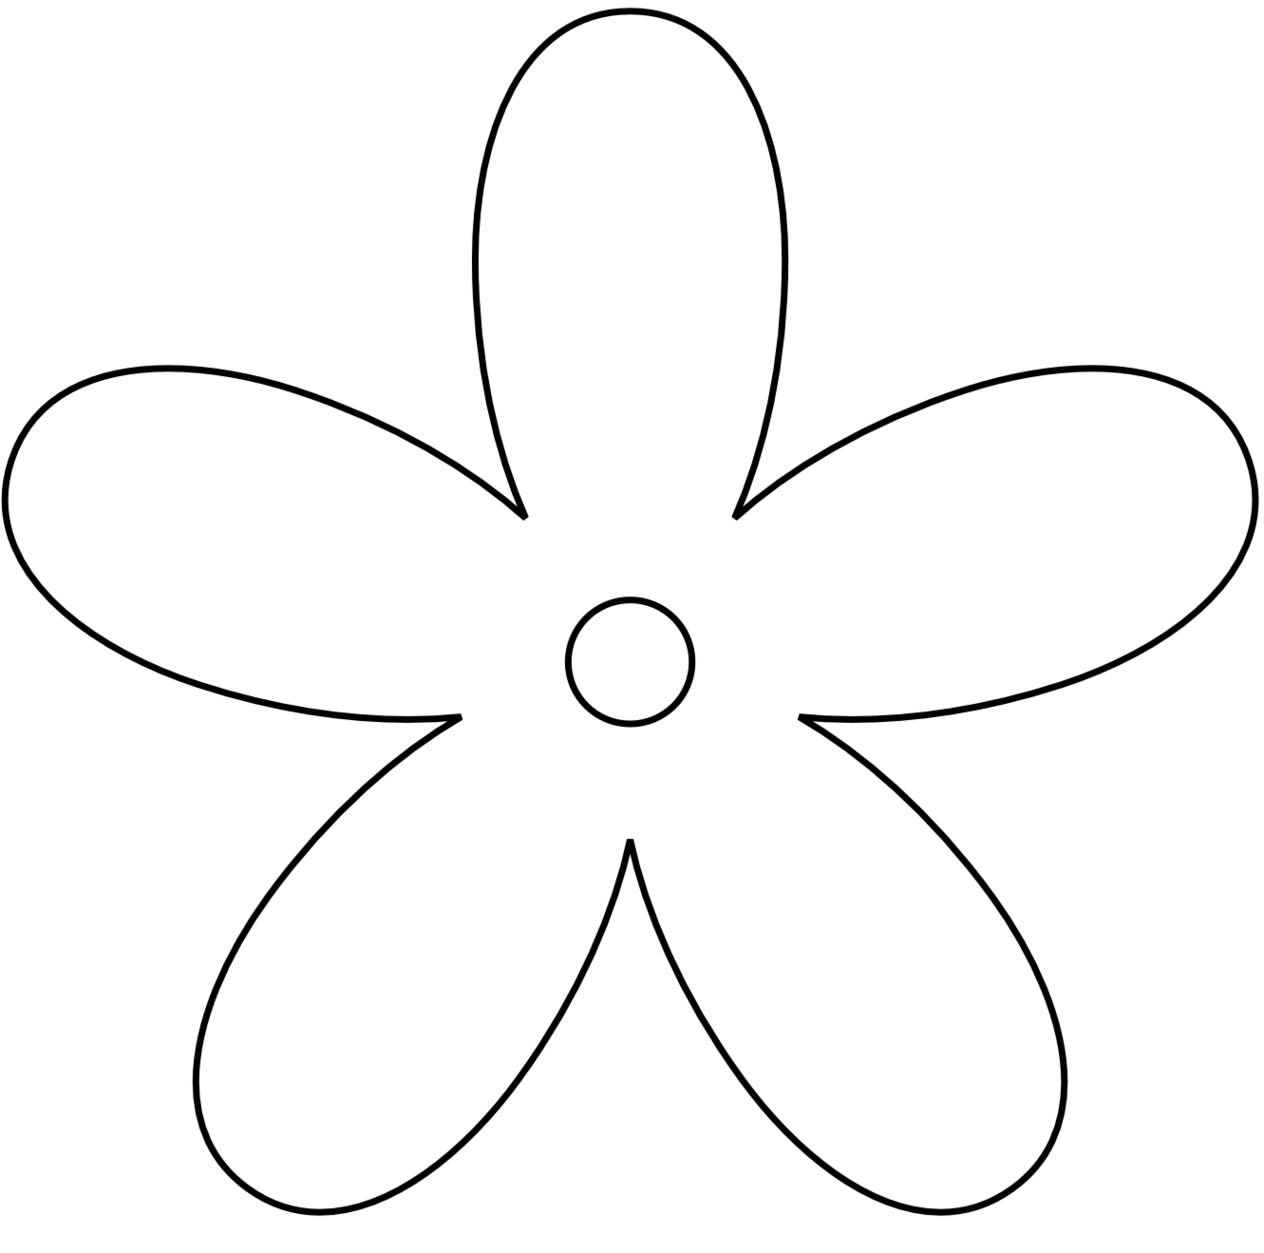 Clipart flower black and white.  collection of simple